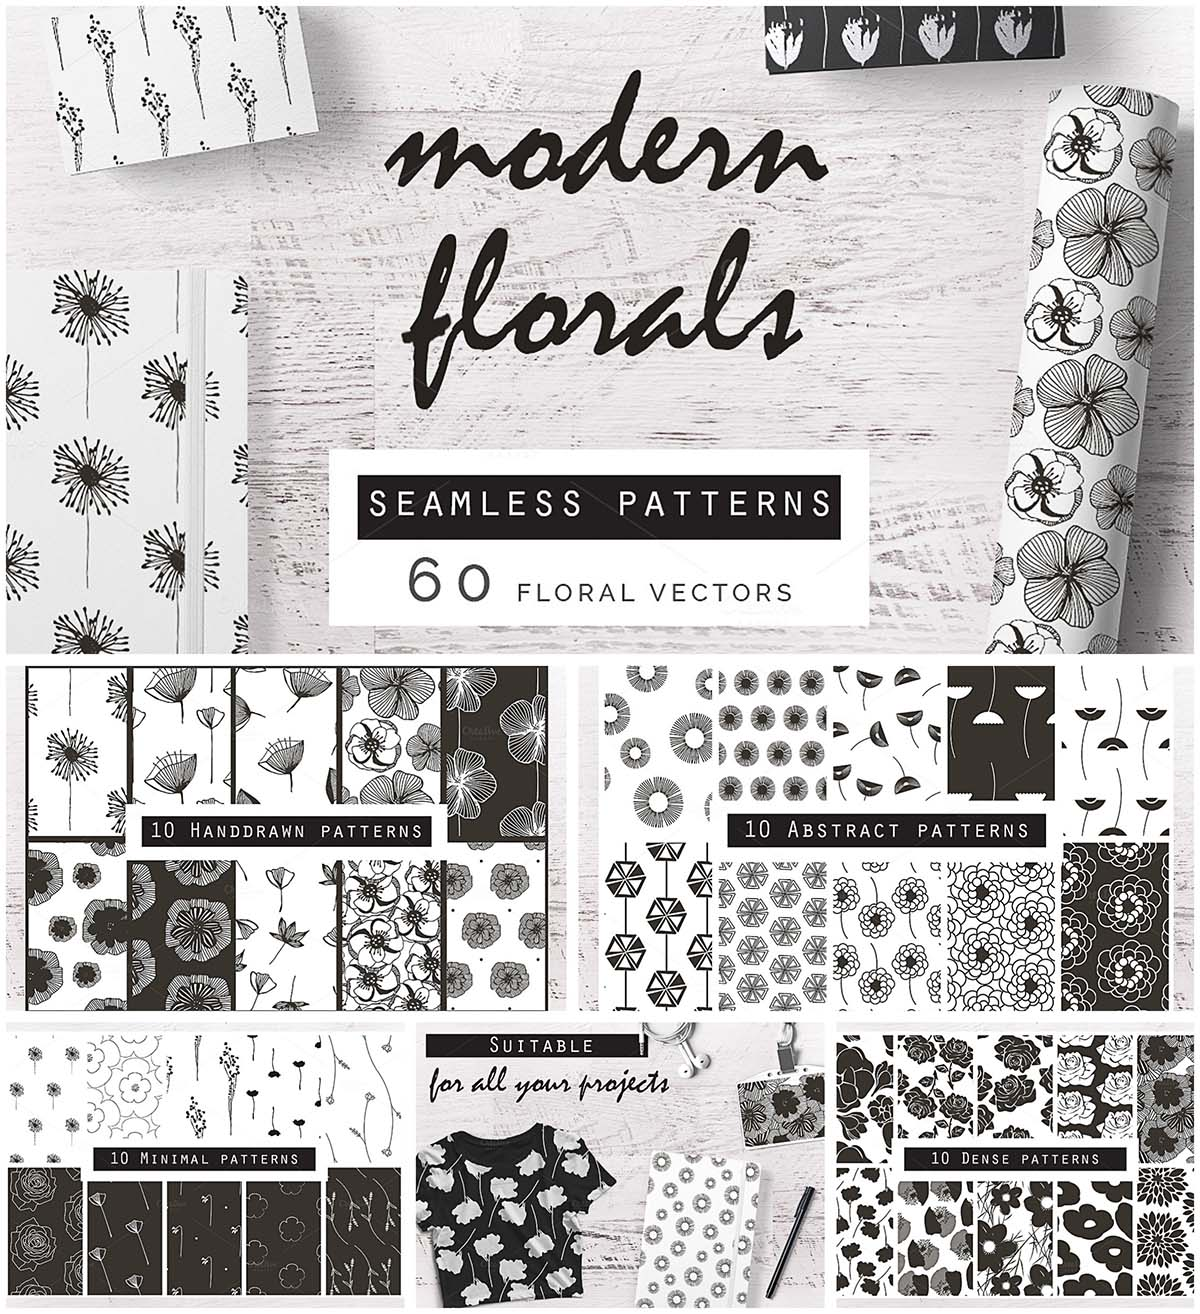 Monochrome flower pattern set